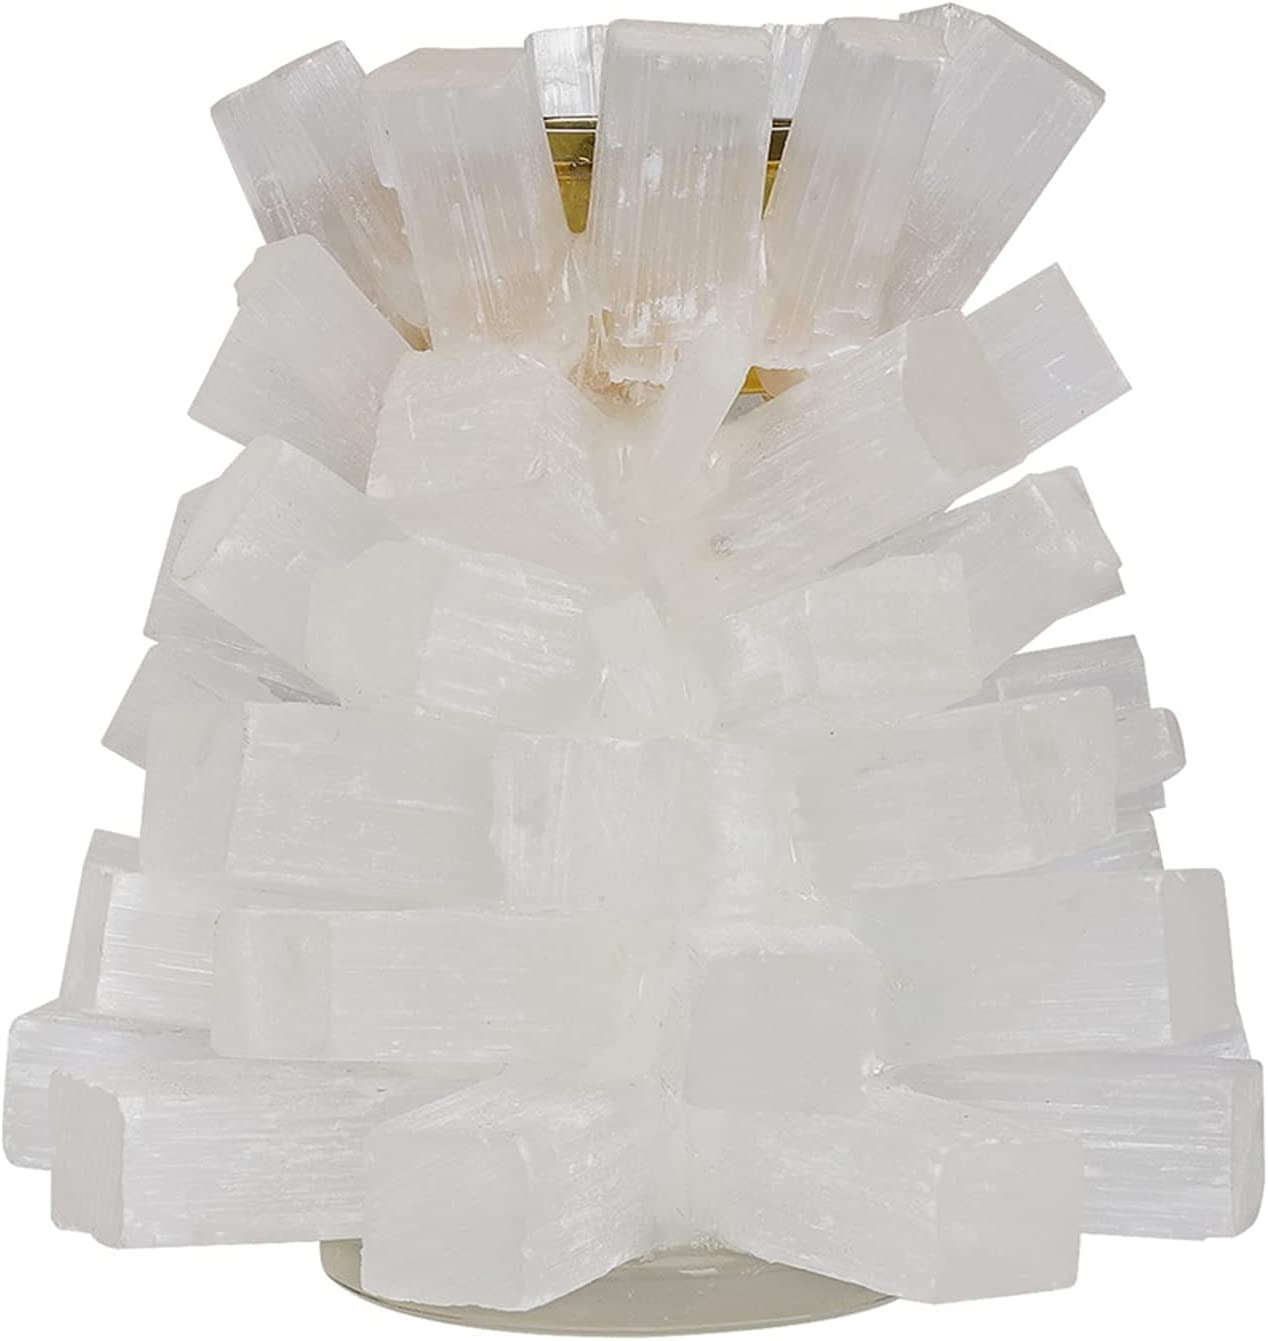 MAXIAOTONG Discount is also underway 1pcs Superior Natural Selenite Candle Holders Stickers